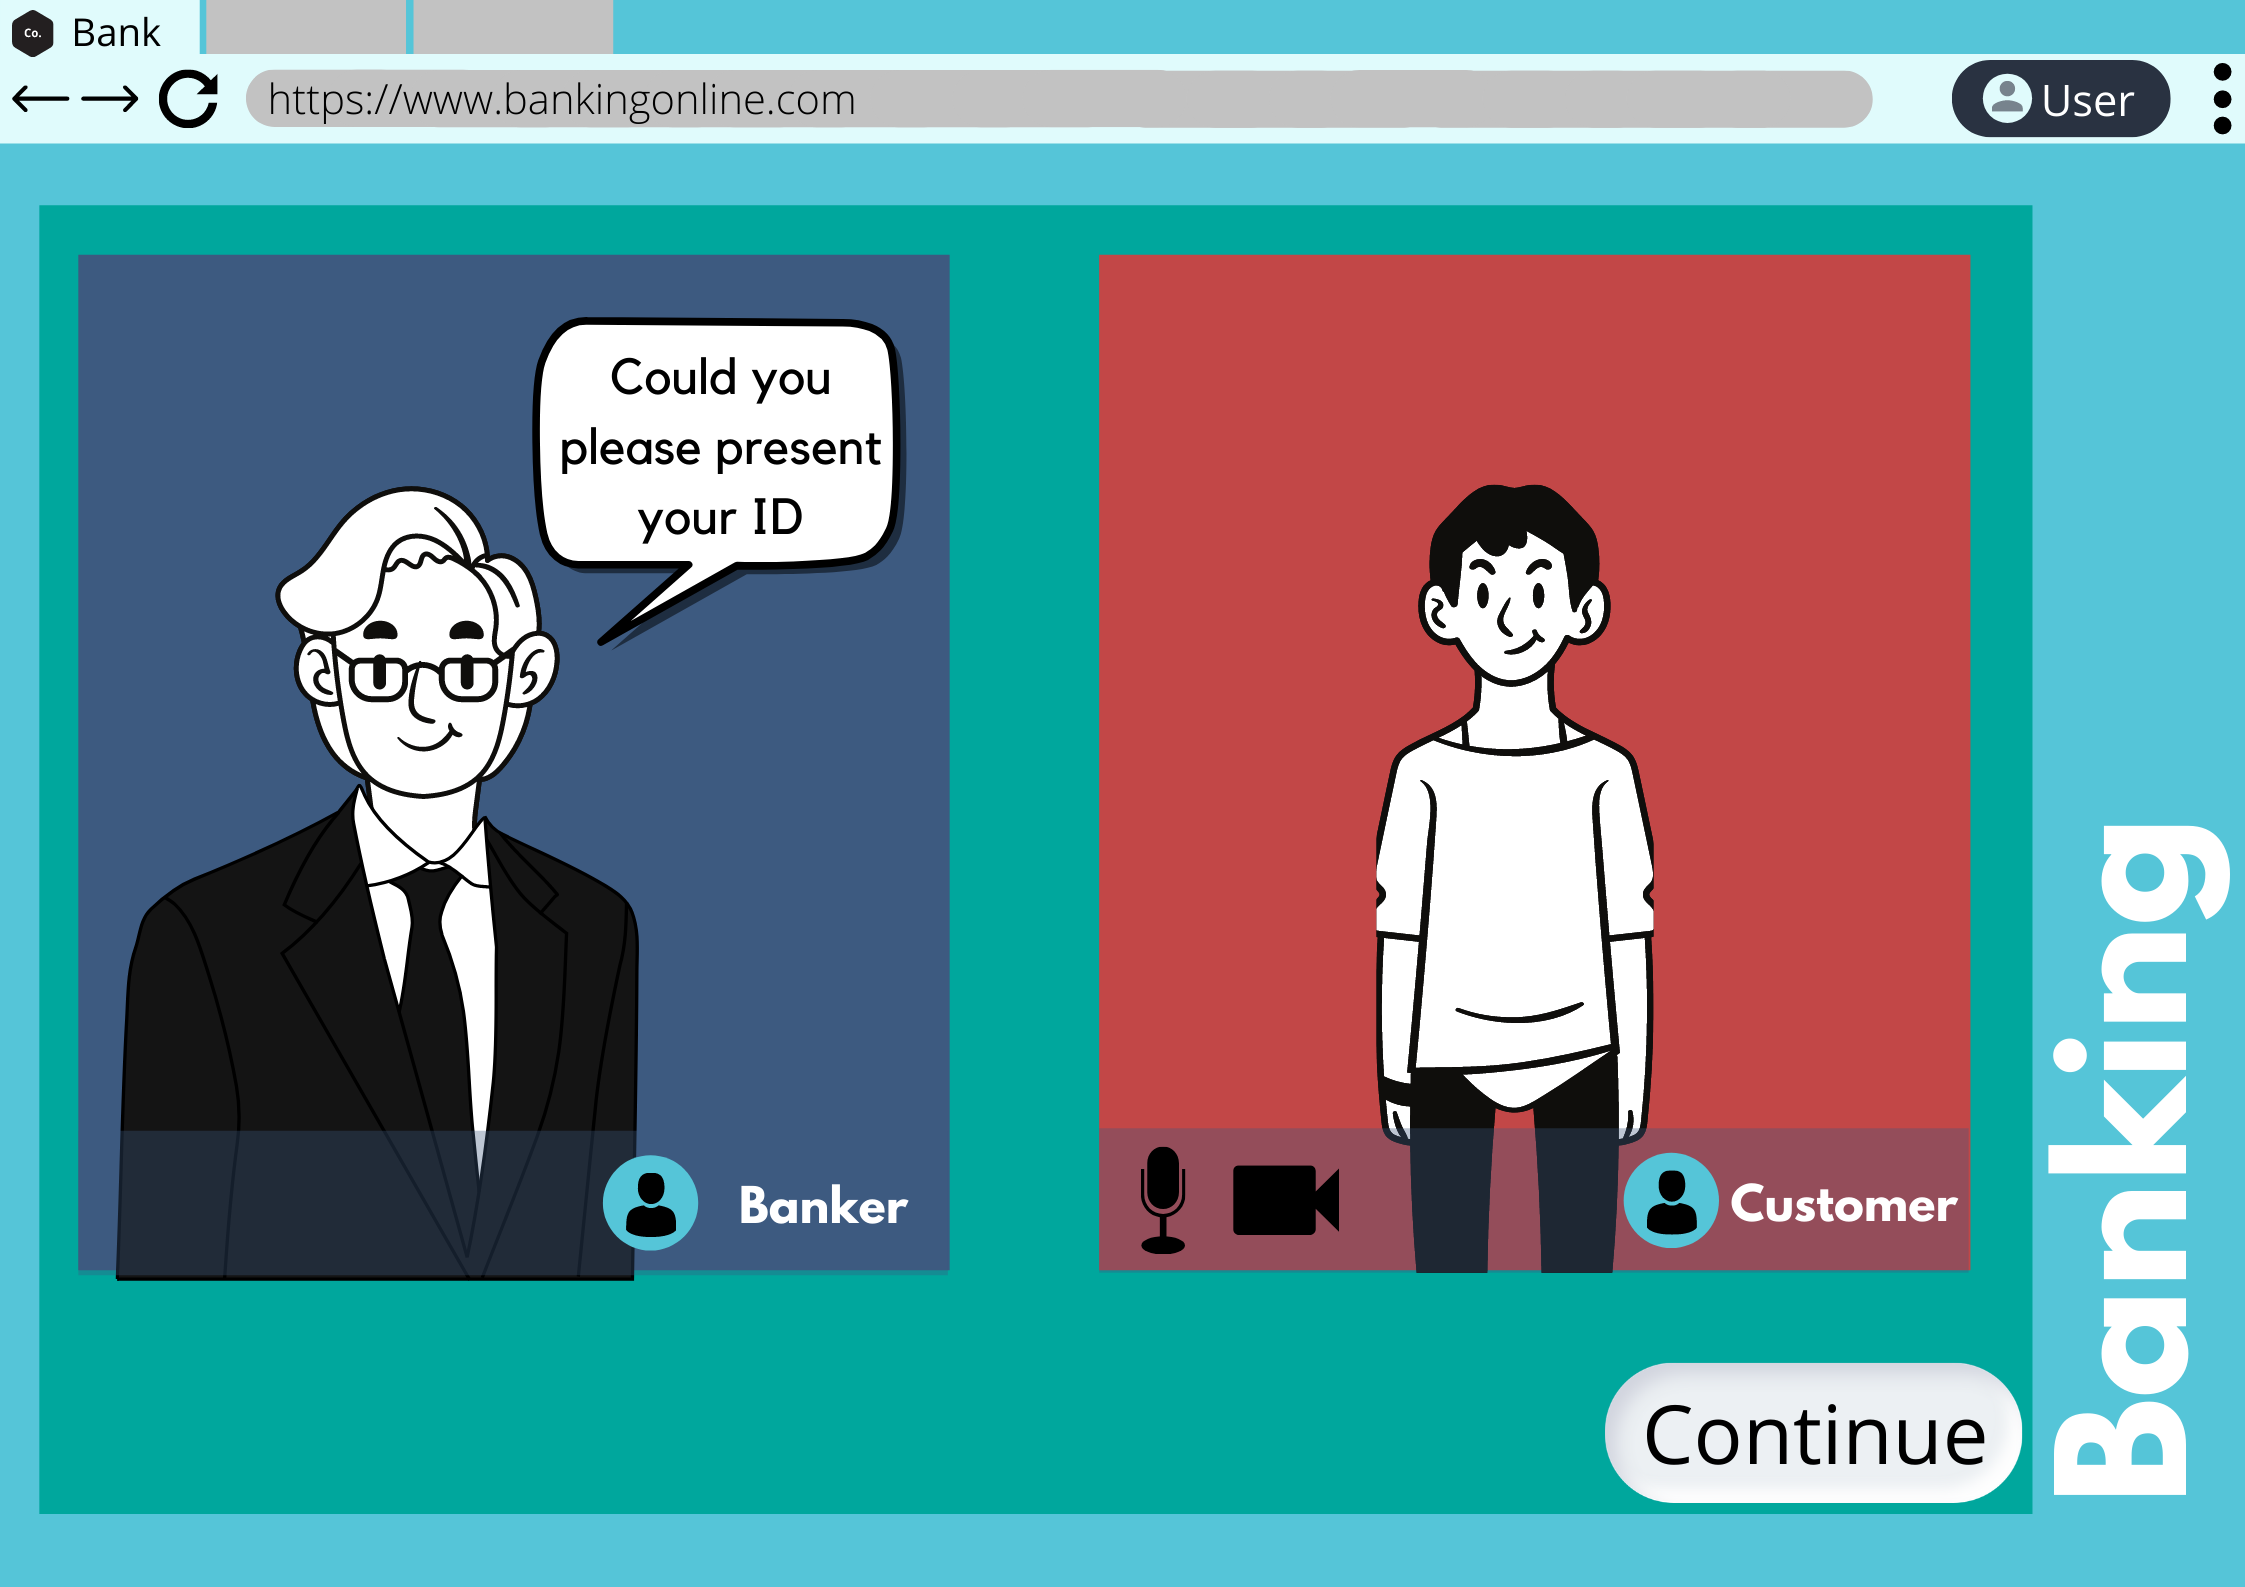 Image of a Video call between banker and customer - online verification